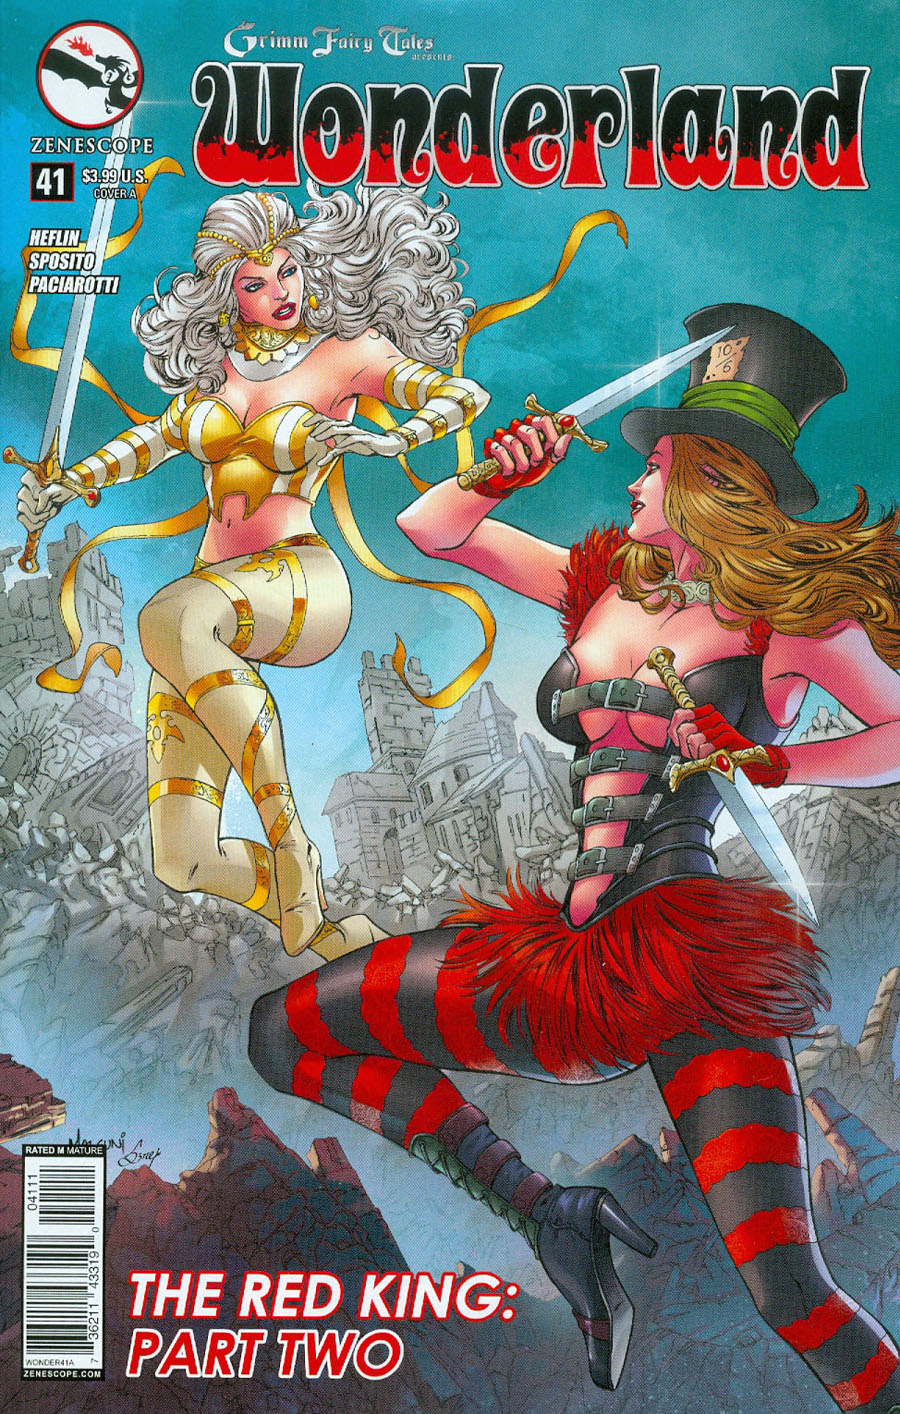 Grimm Fairy Tales Presents Wonderland Vol 2 #41 Cover A Abhishek Malsuni